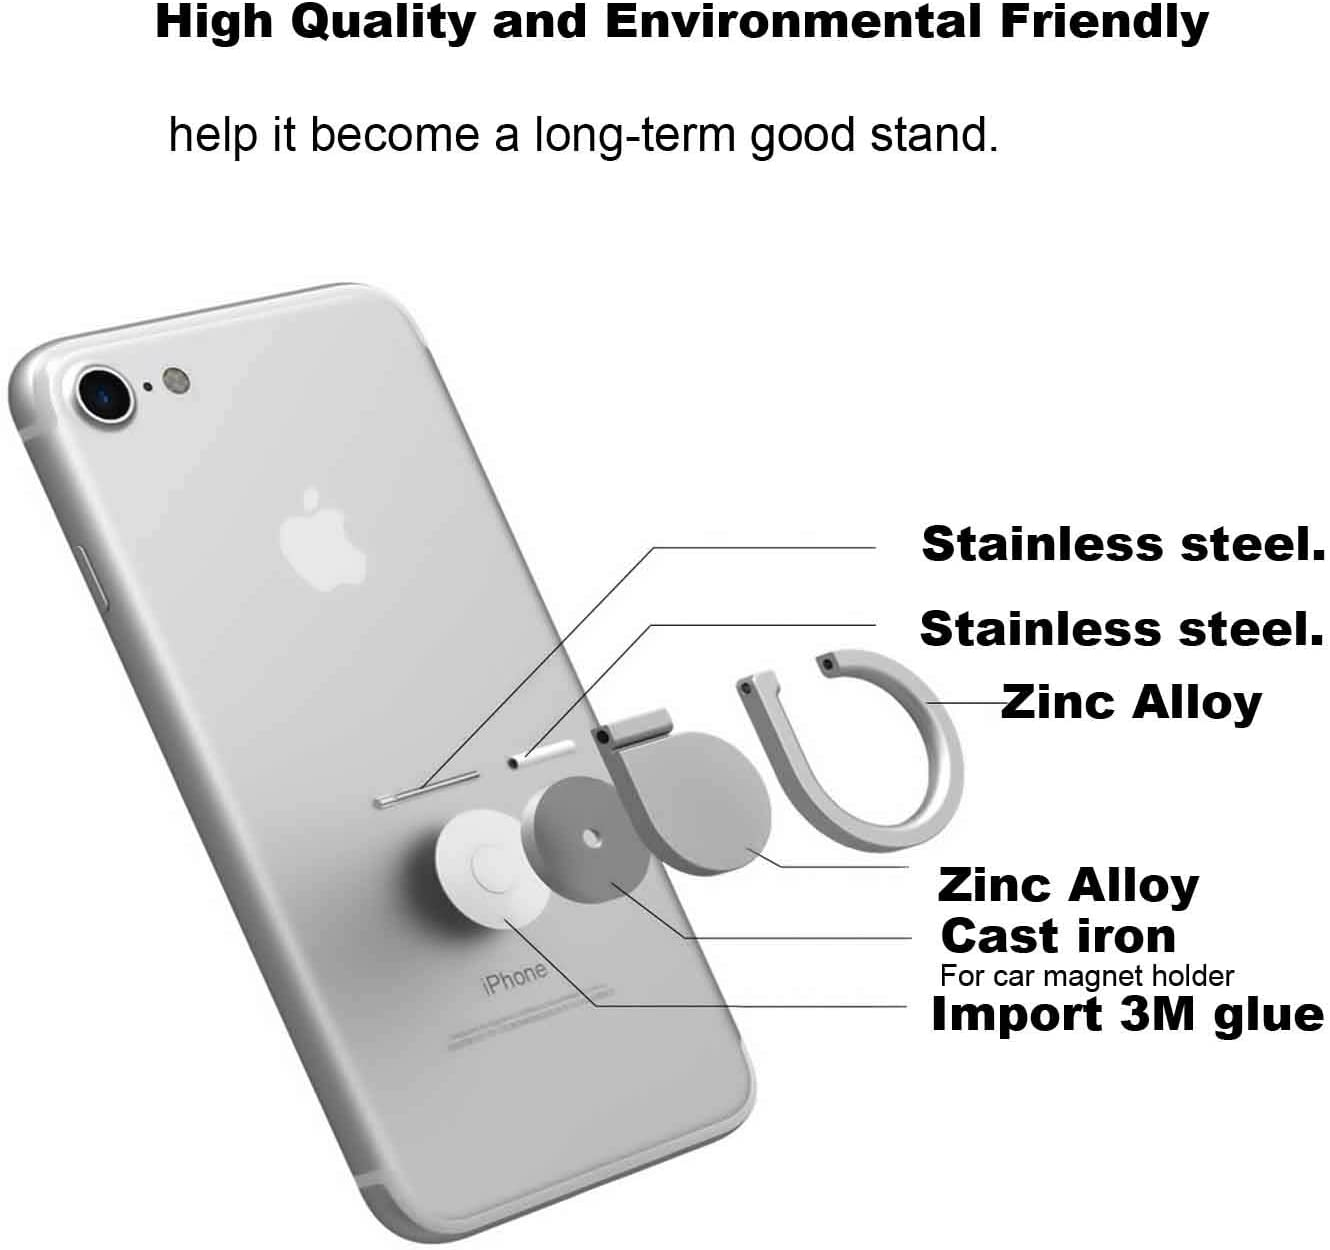 Phone Ring Holder,iEugen Full-Metal 360 Rotation Phone Grip Kickstand Work on Magnetic Car Holder Universal Finger Stand for iPhone Xs XR MAX8 7 7 Plus 6S 6 5 5S,Samsung Galaxy S9 Plus,iPads-Gold